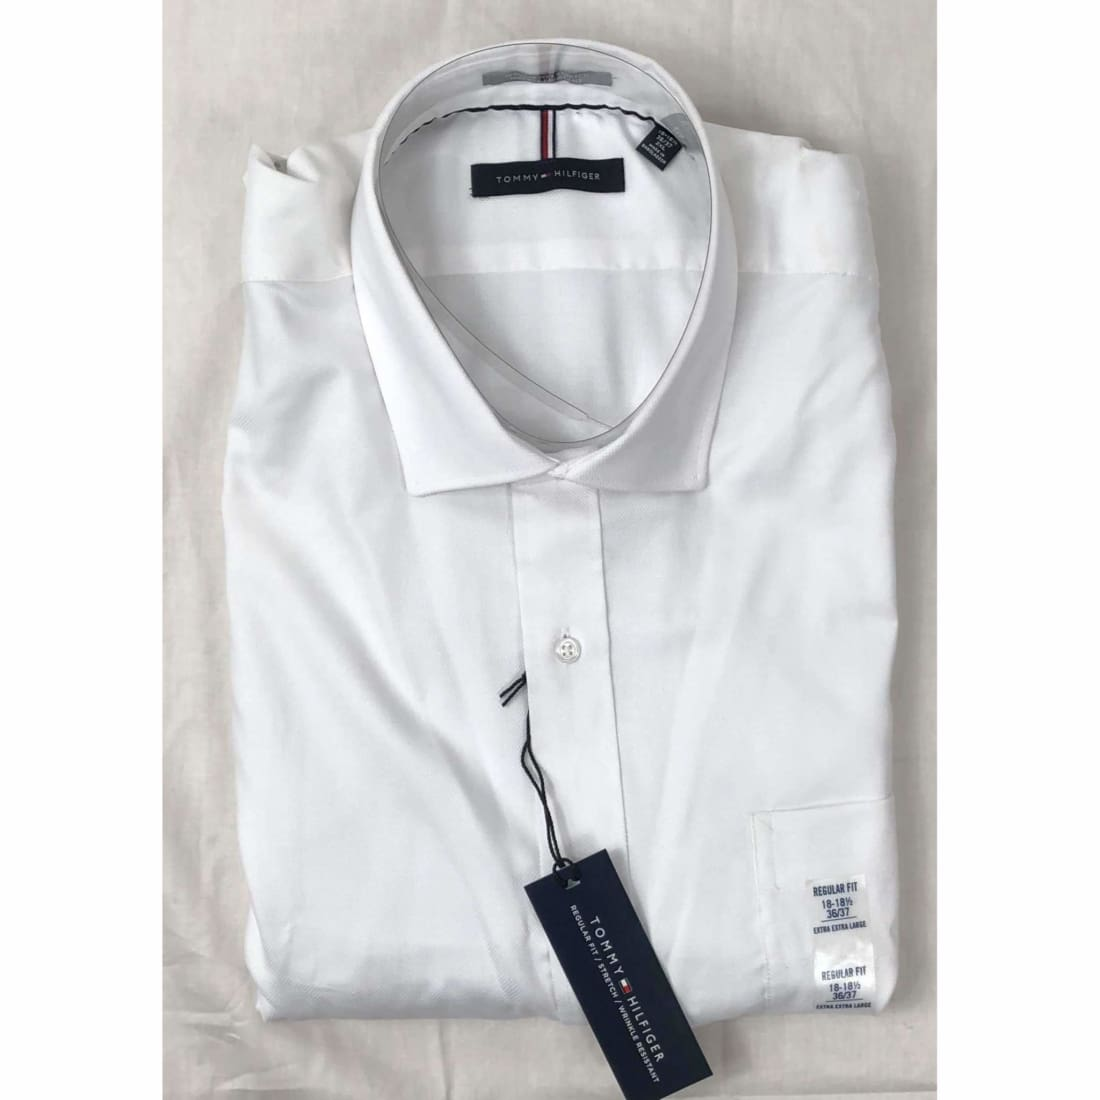 Tommy Hilfiger Regular Fit Button Front Dress Shirt M / White / 34-35 Dress Shirts